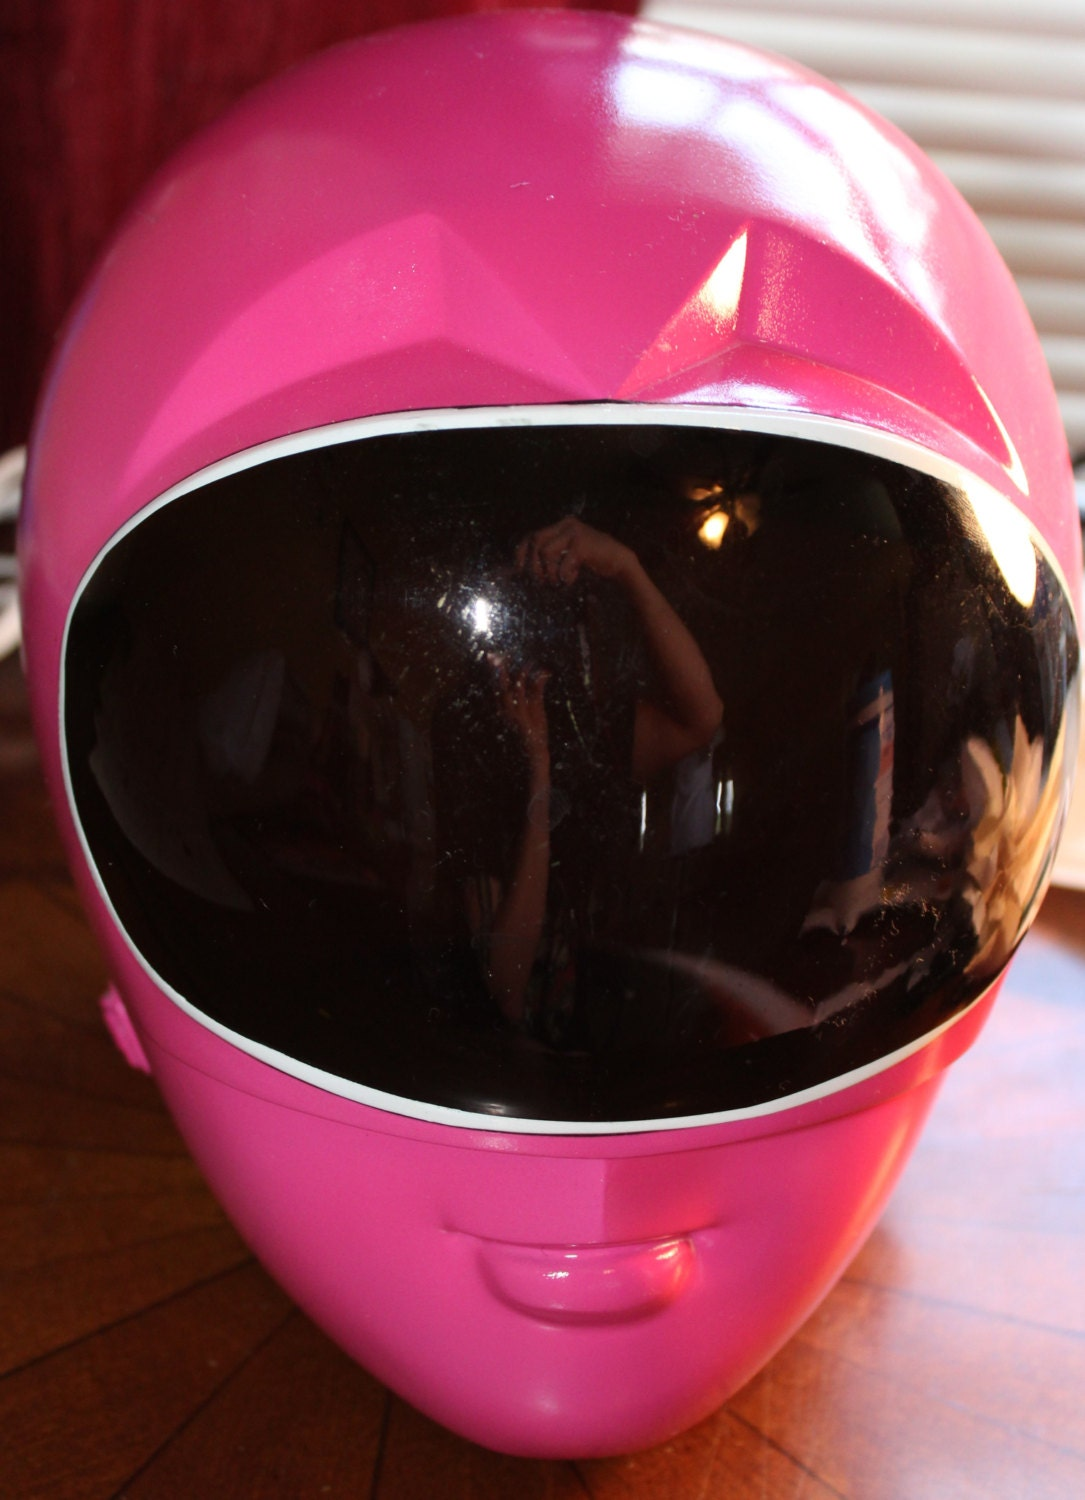 Power Rangers Helmet Pink Cinemas 93